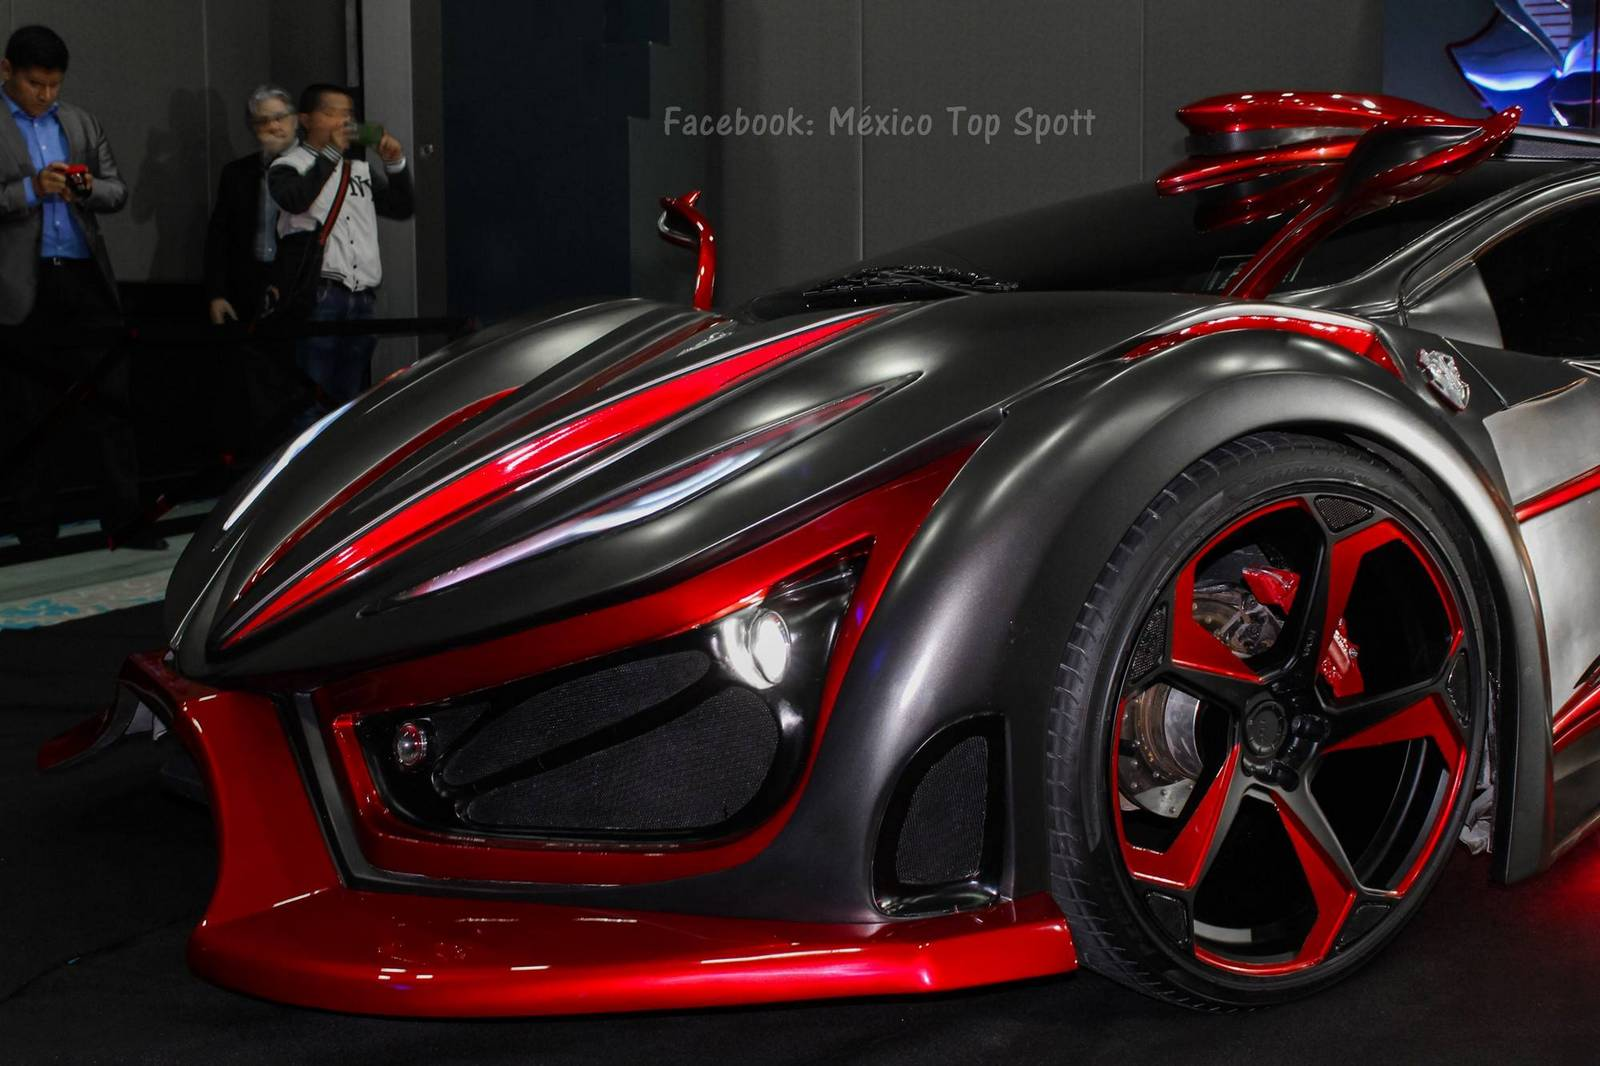 Inferno Exotic Car 2017 >> Mexico's First Hypercar, the Inferno Exotic Car, Isn't Just a Computer Sketch Anymore ...